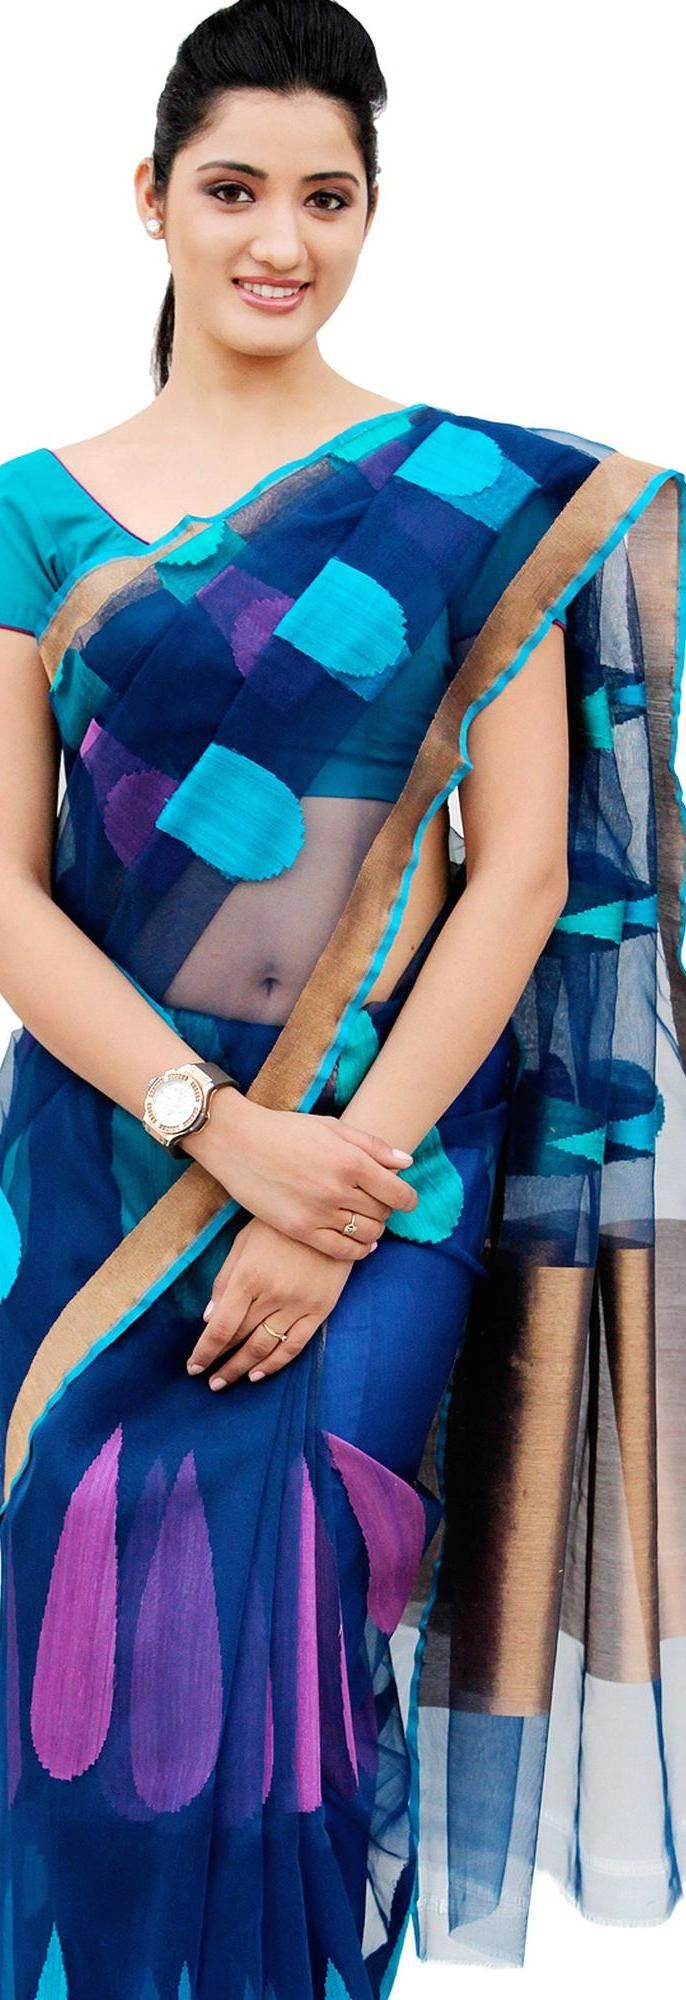 Pure handloom Saree - very great colors and design - will work well for modern Indian women